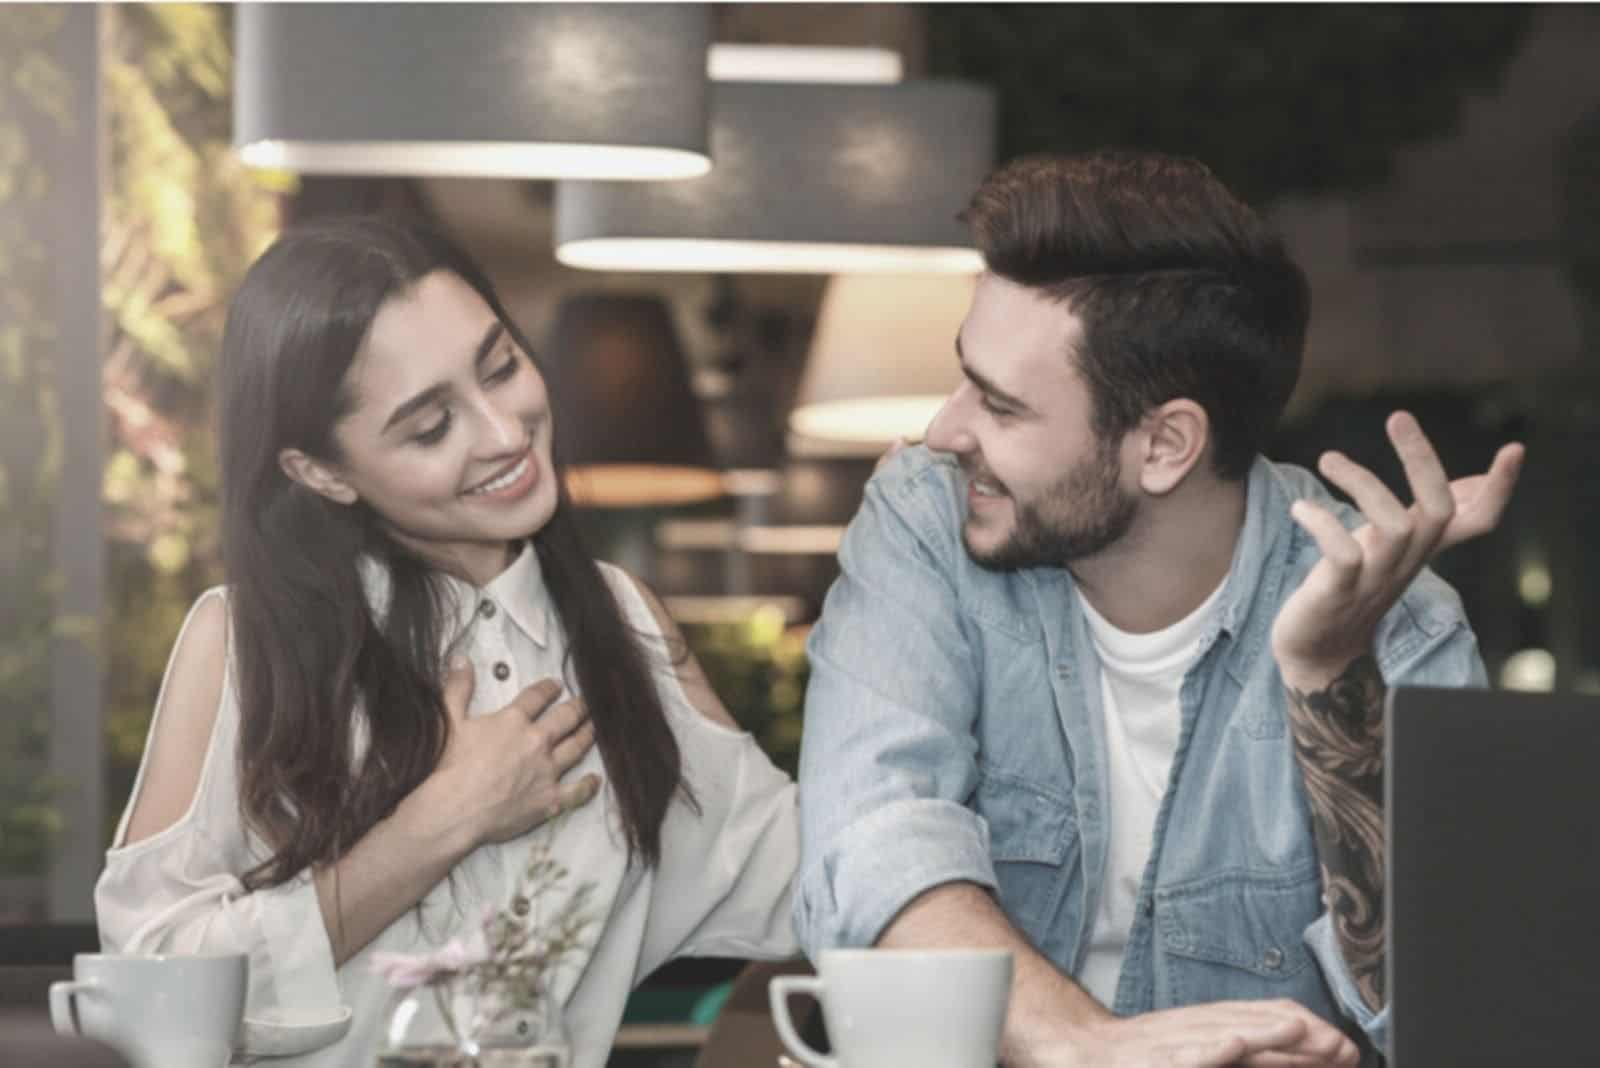 woman holding her chest and smiling while talking to a man beside her inside the cafe